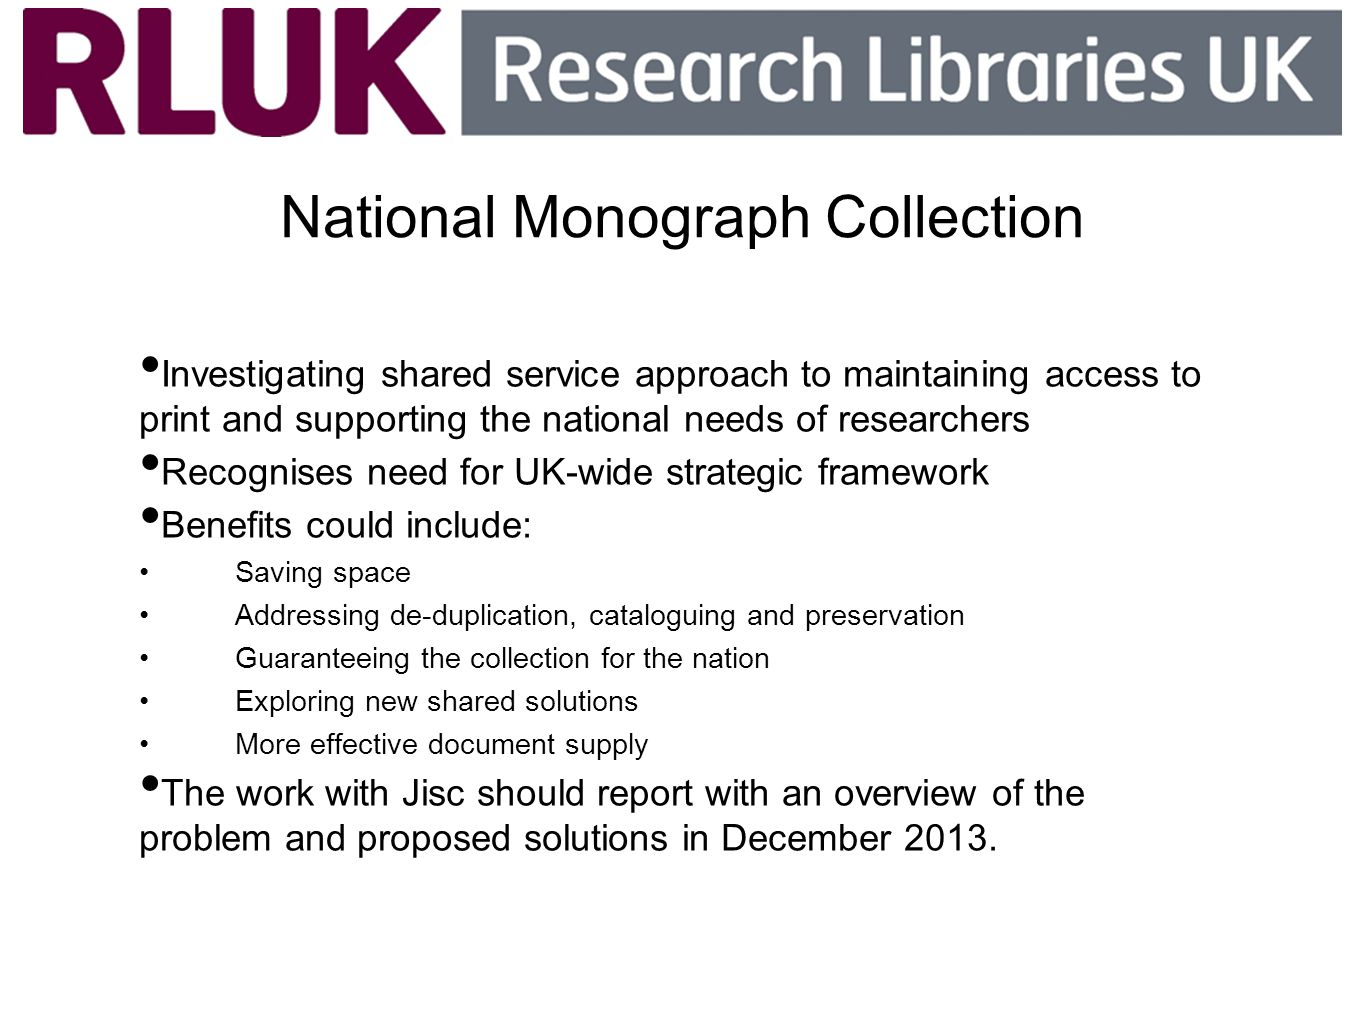 National Monograph Collection Investigating shared service approach to maintaining access to print and supporting the national needs of researchers Re